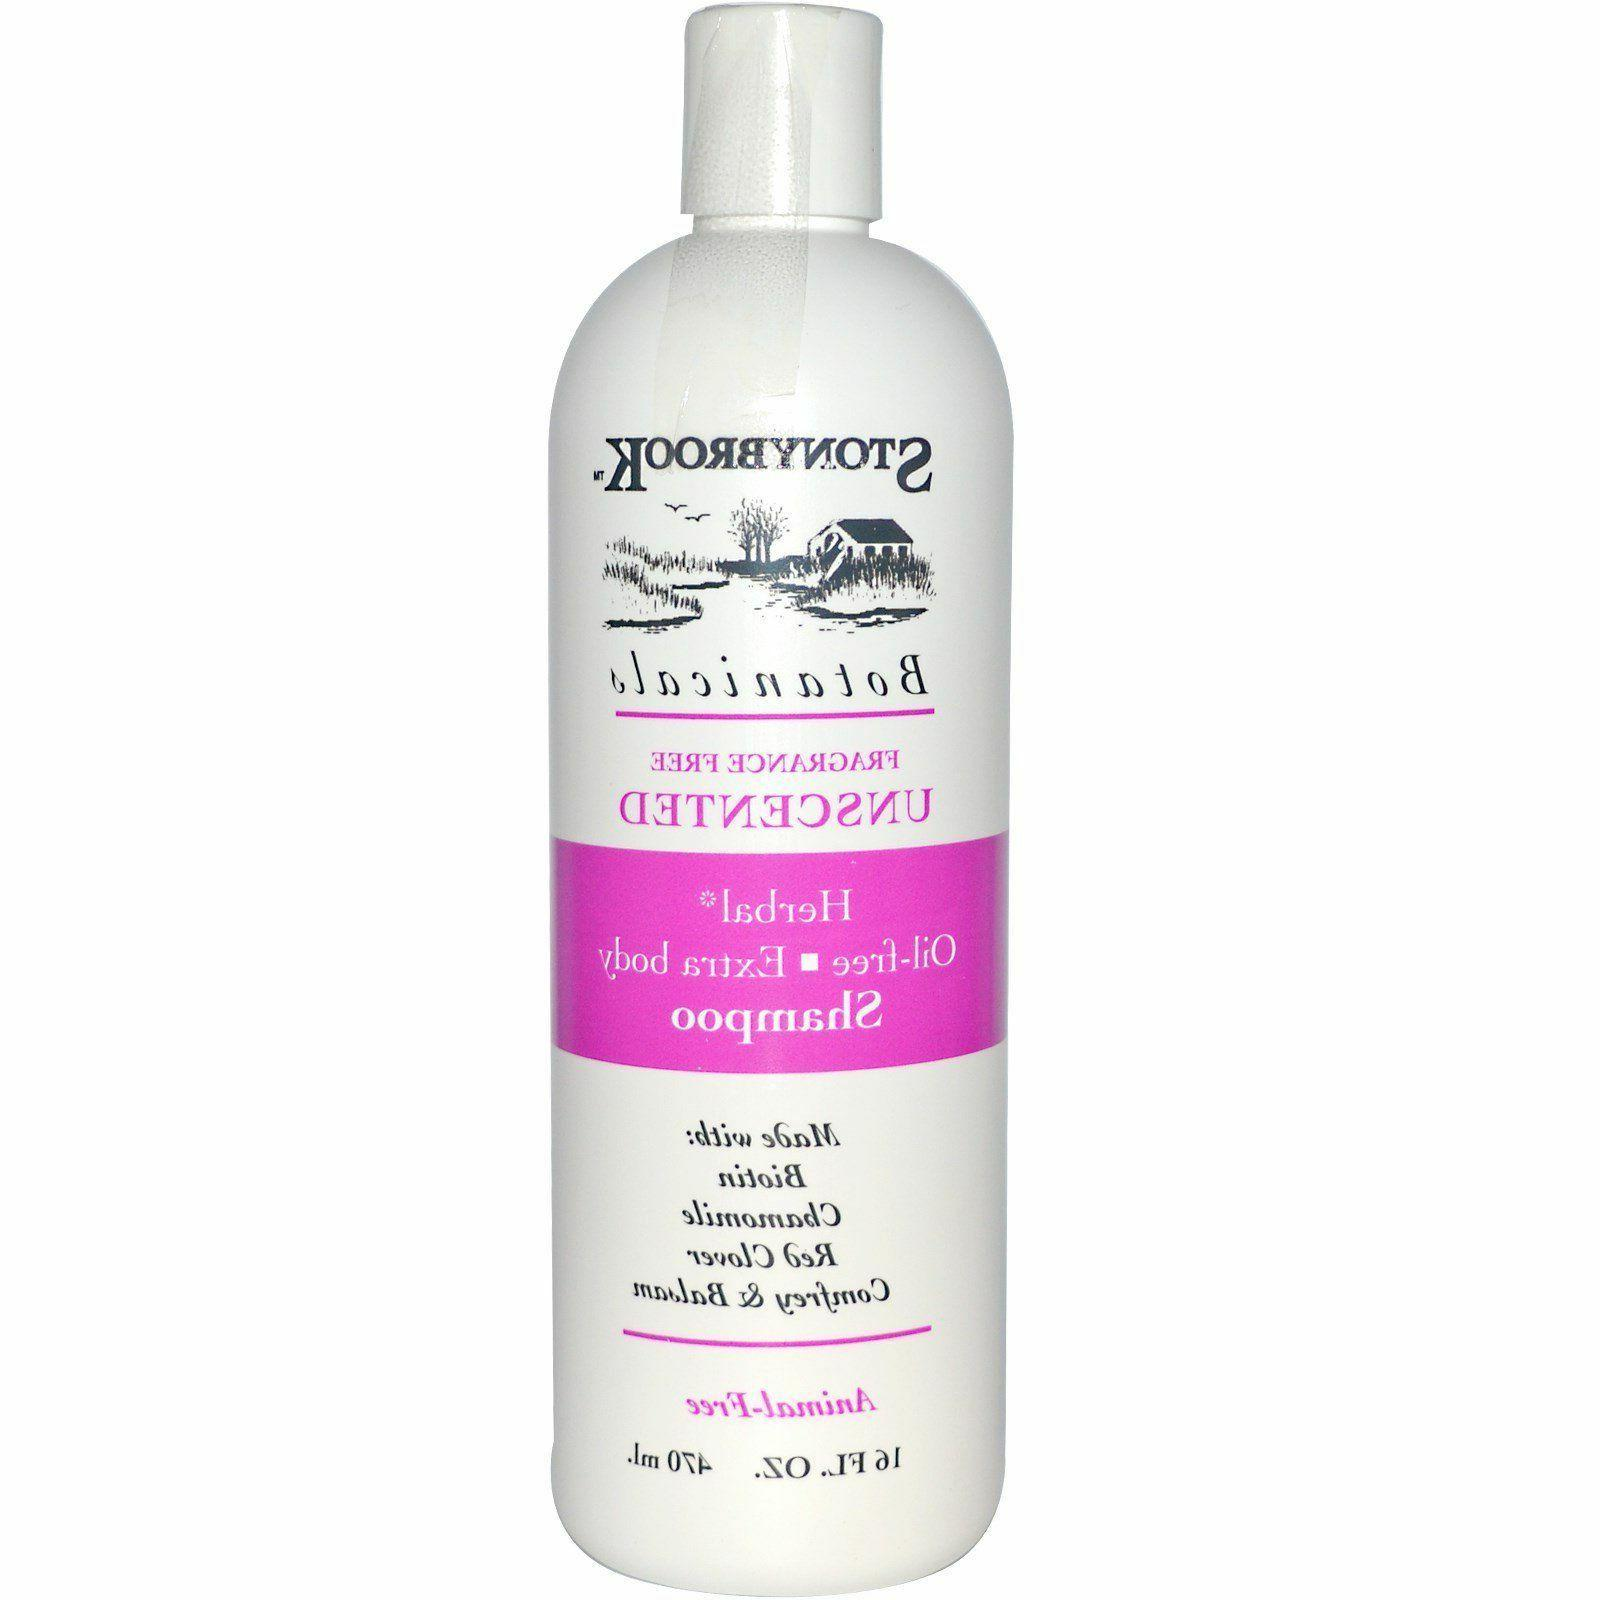 stony brook shampoo unscented fragrance and oil